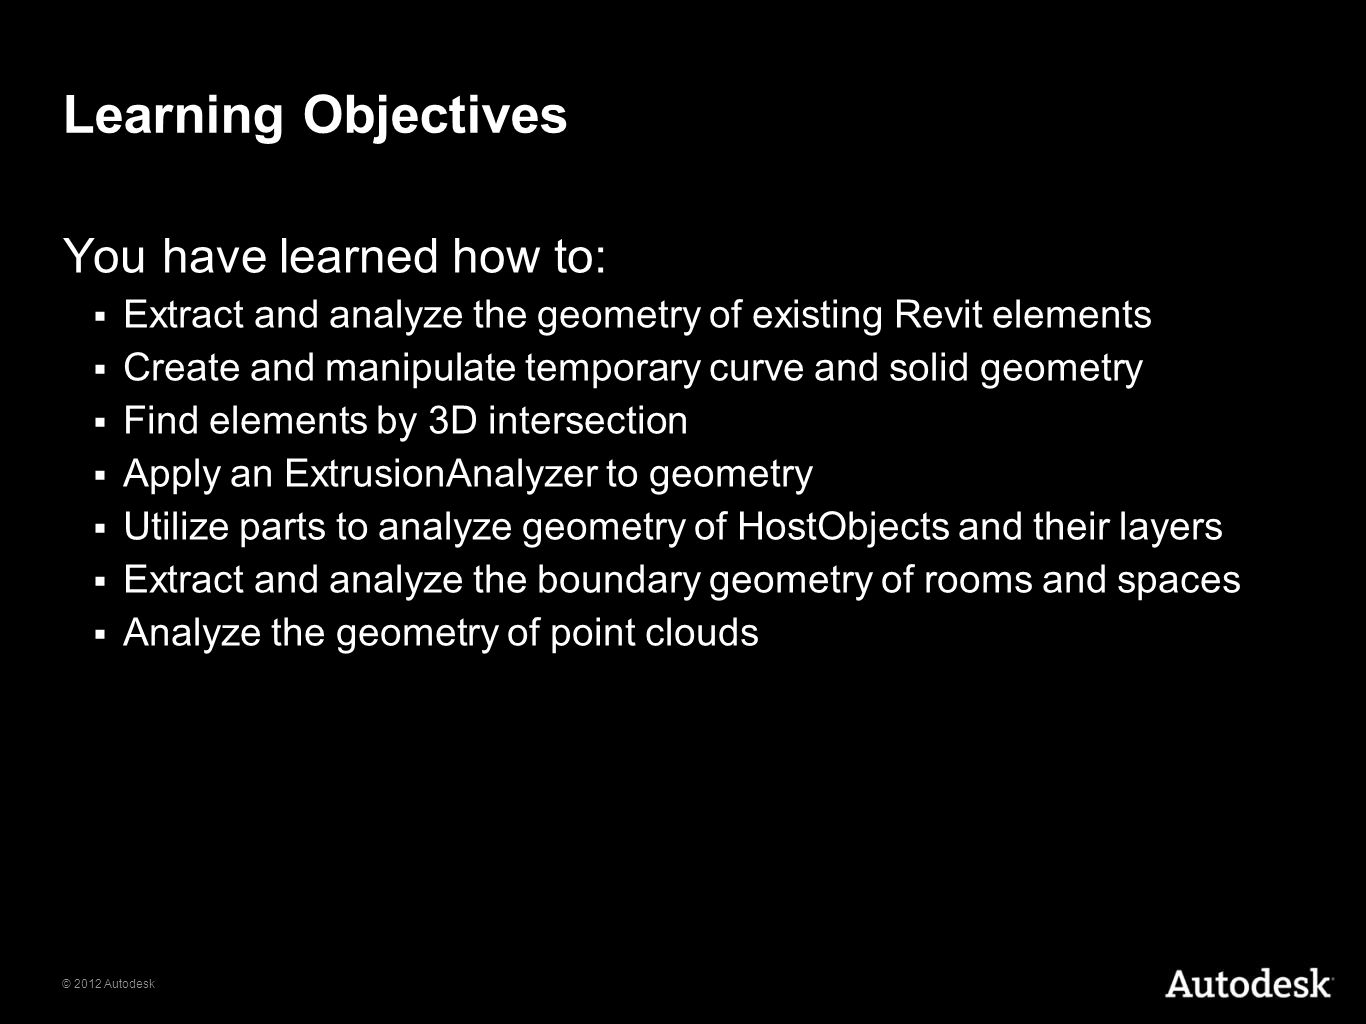 © 2012 Autodesk Learning Objectives You have learned how to: Extract and analyze the geometry of existing Revit elements Create and manipulate tempora